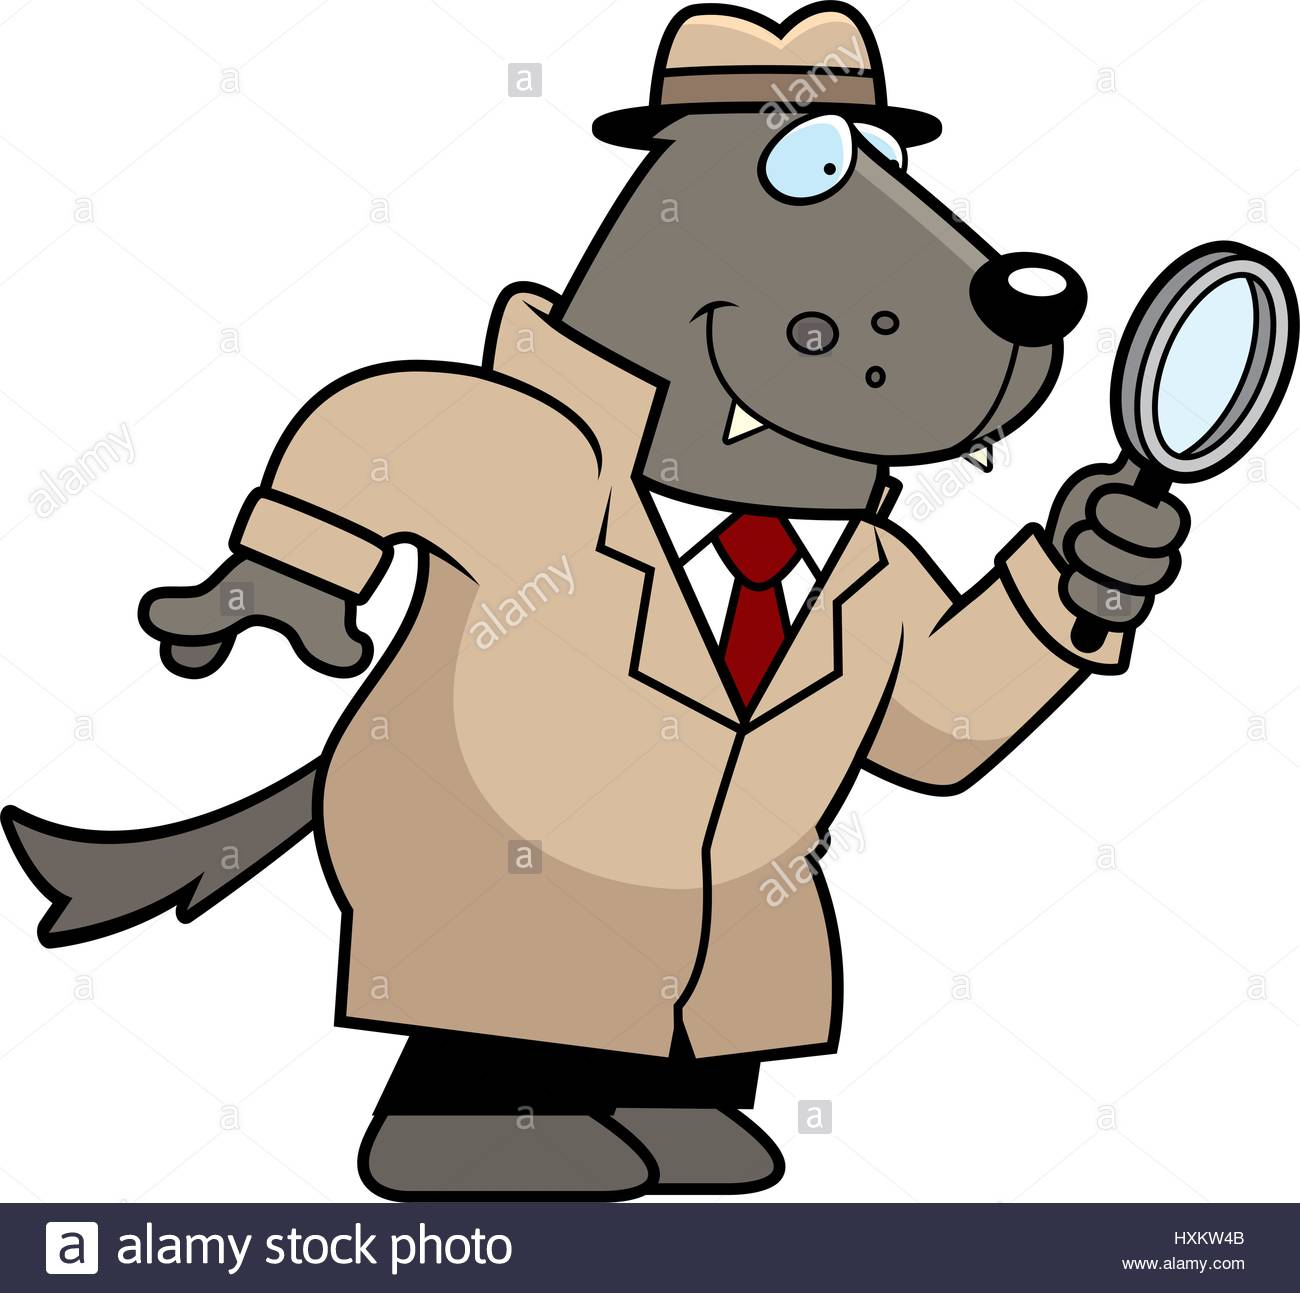 1300x1293 A Cartoon Illustration Of A Wolf Detective Investigating Stock